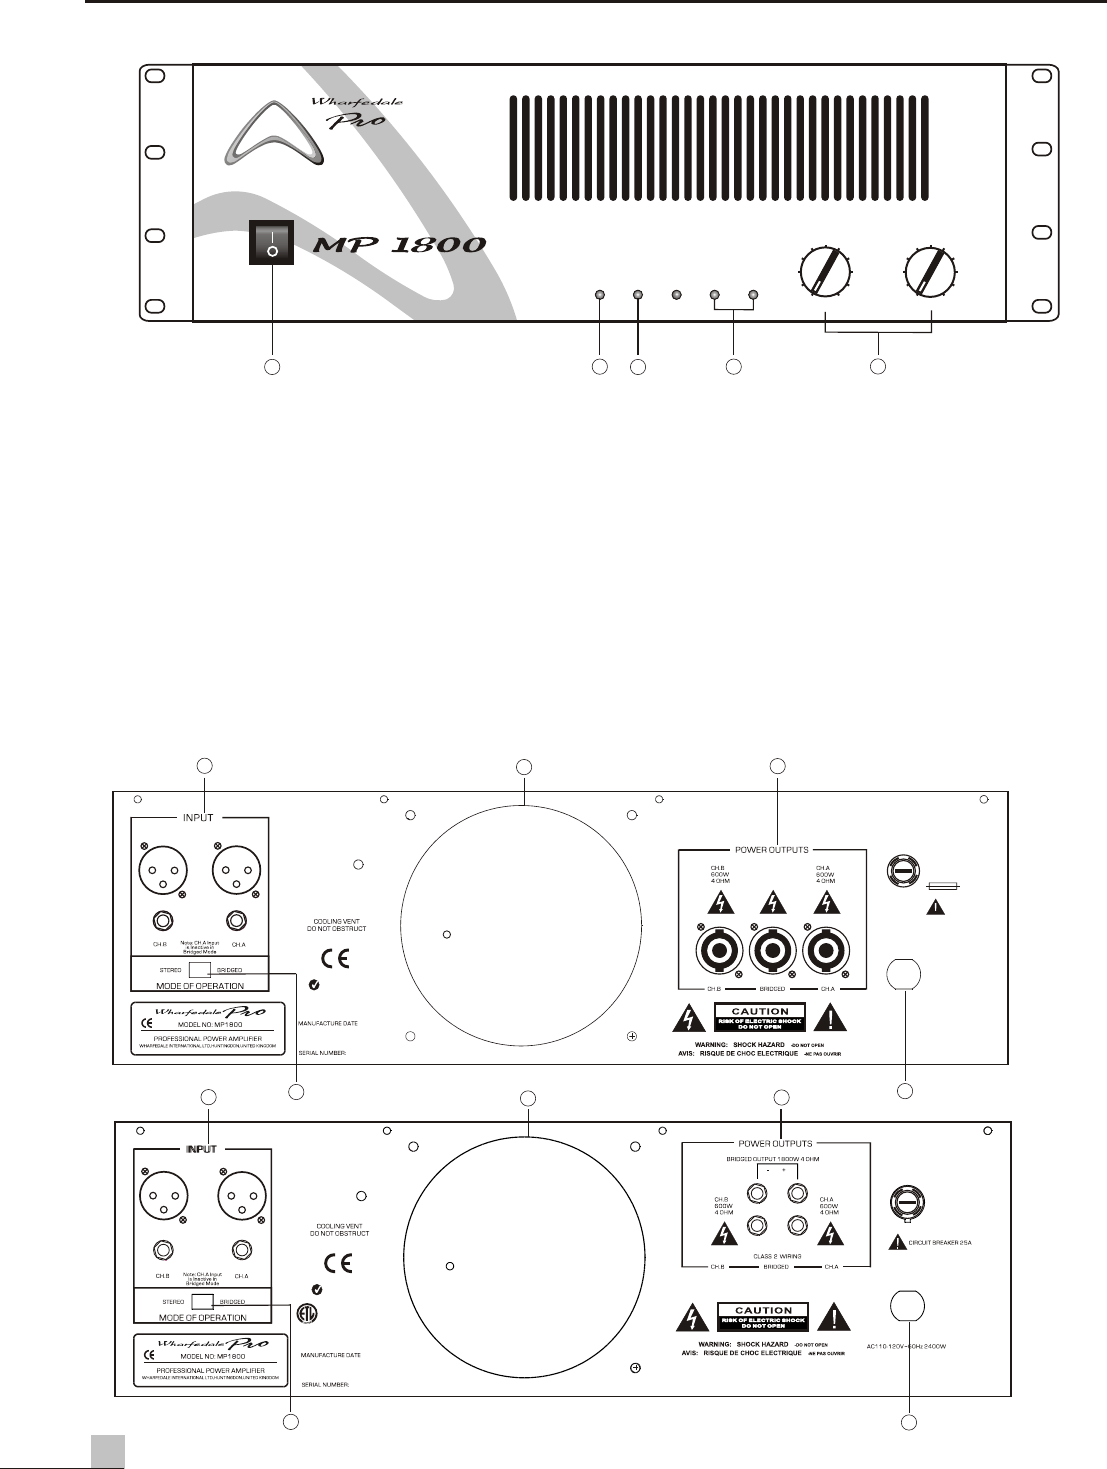 Page 4 of Wharfedale Stereo Amplifier MP 1200 User Guide